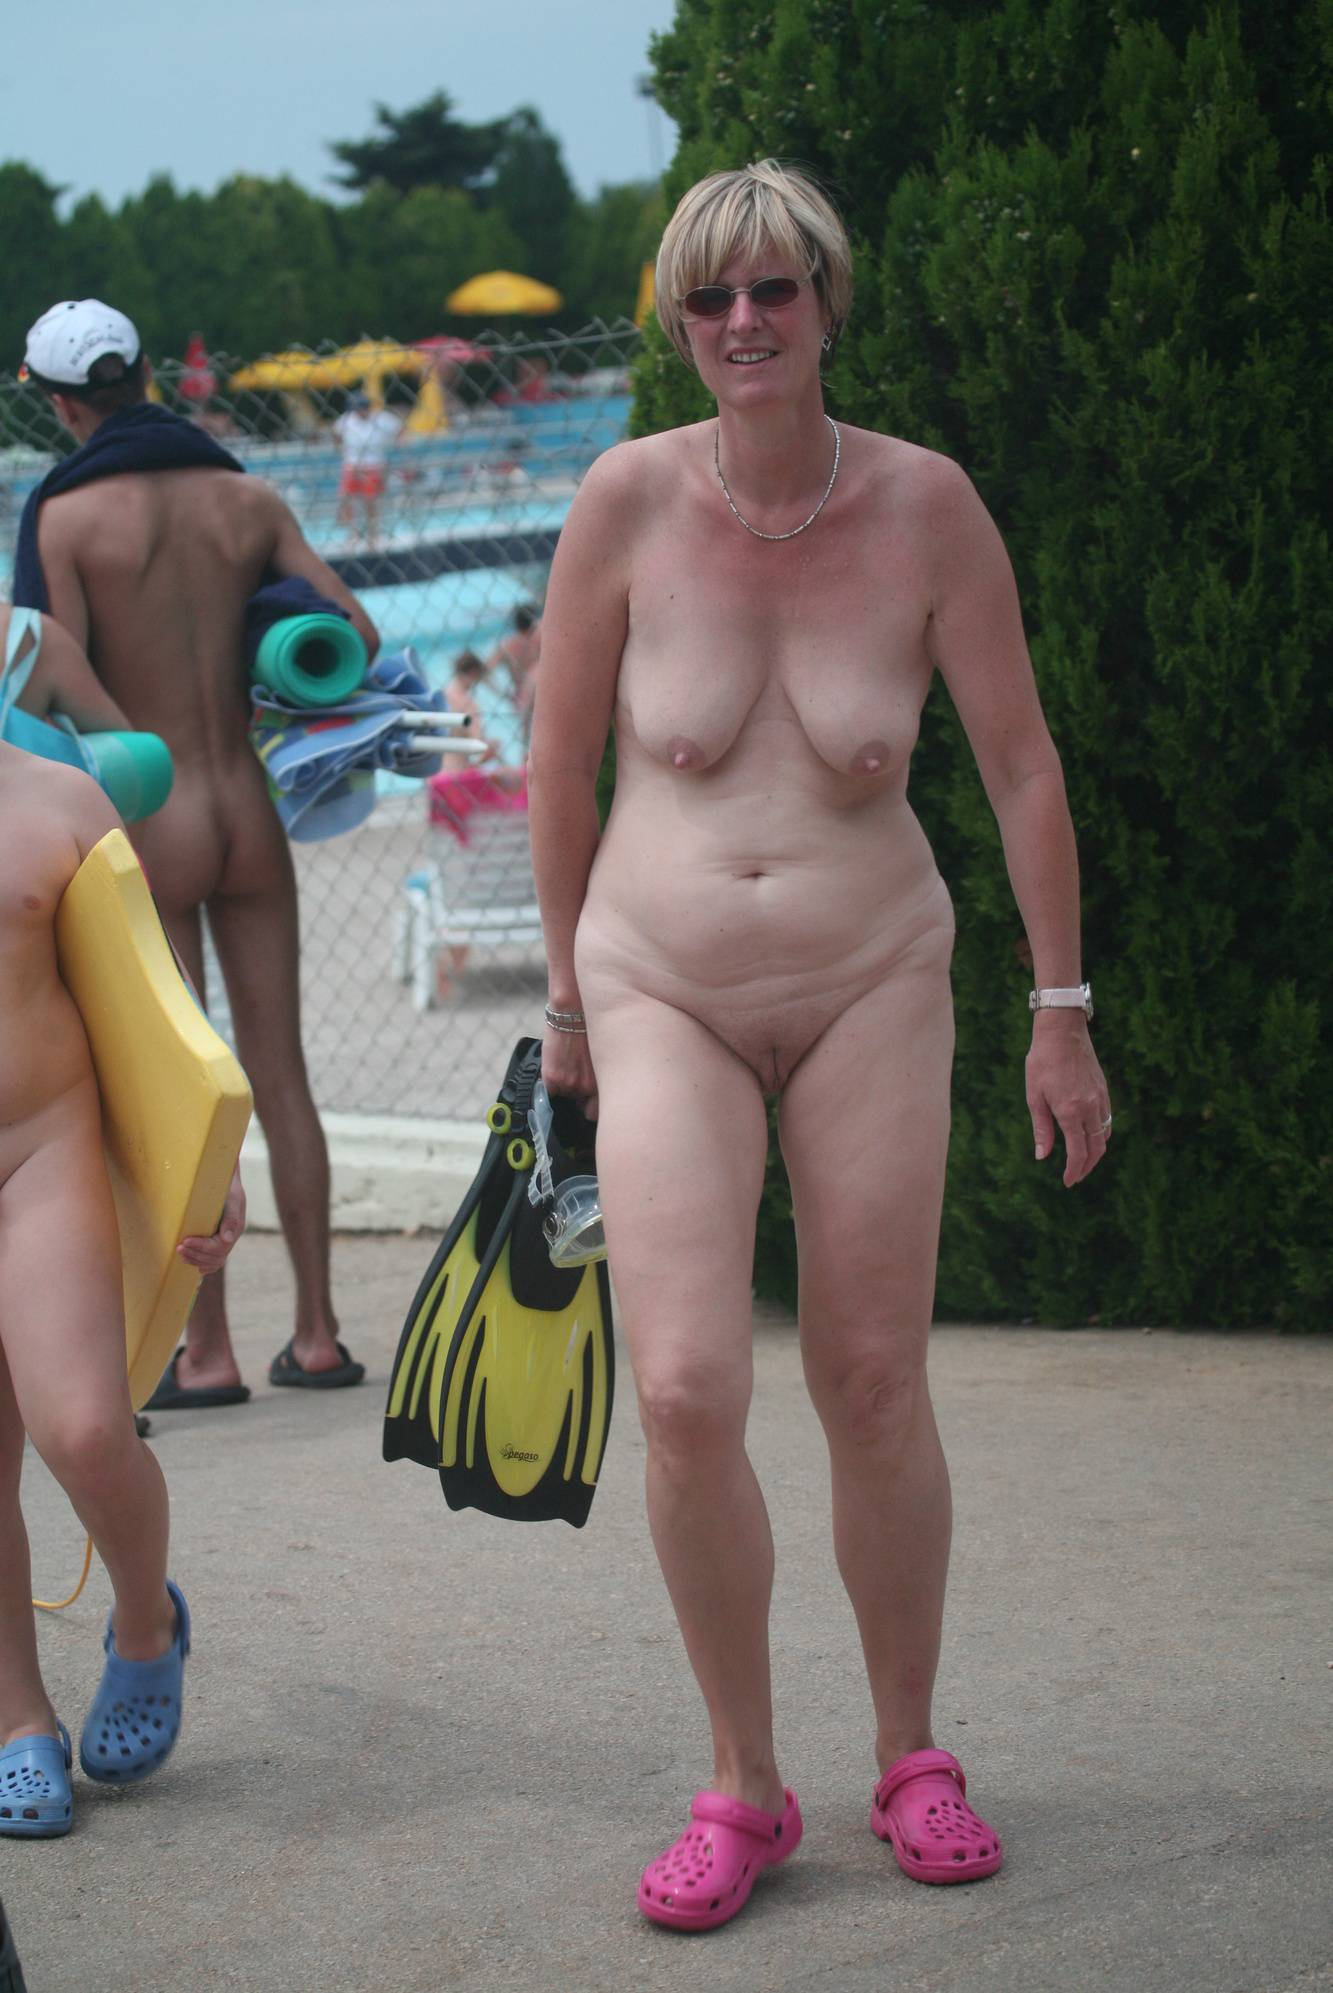 Naturist Pool Exit Stand-By - 2